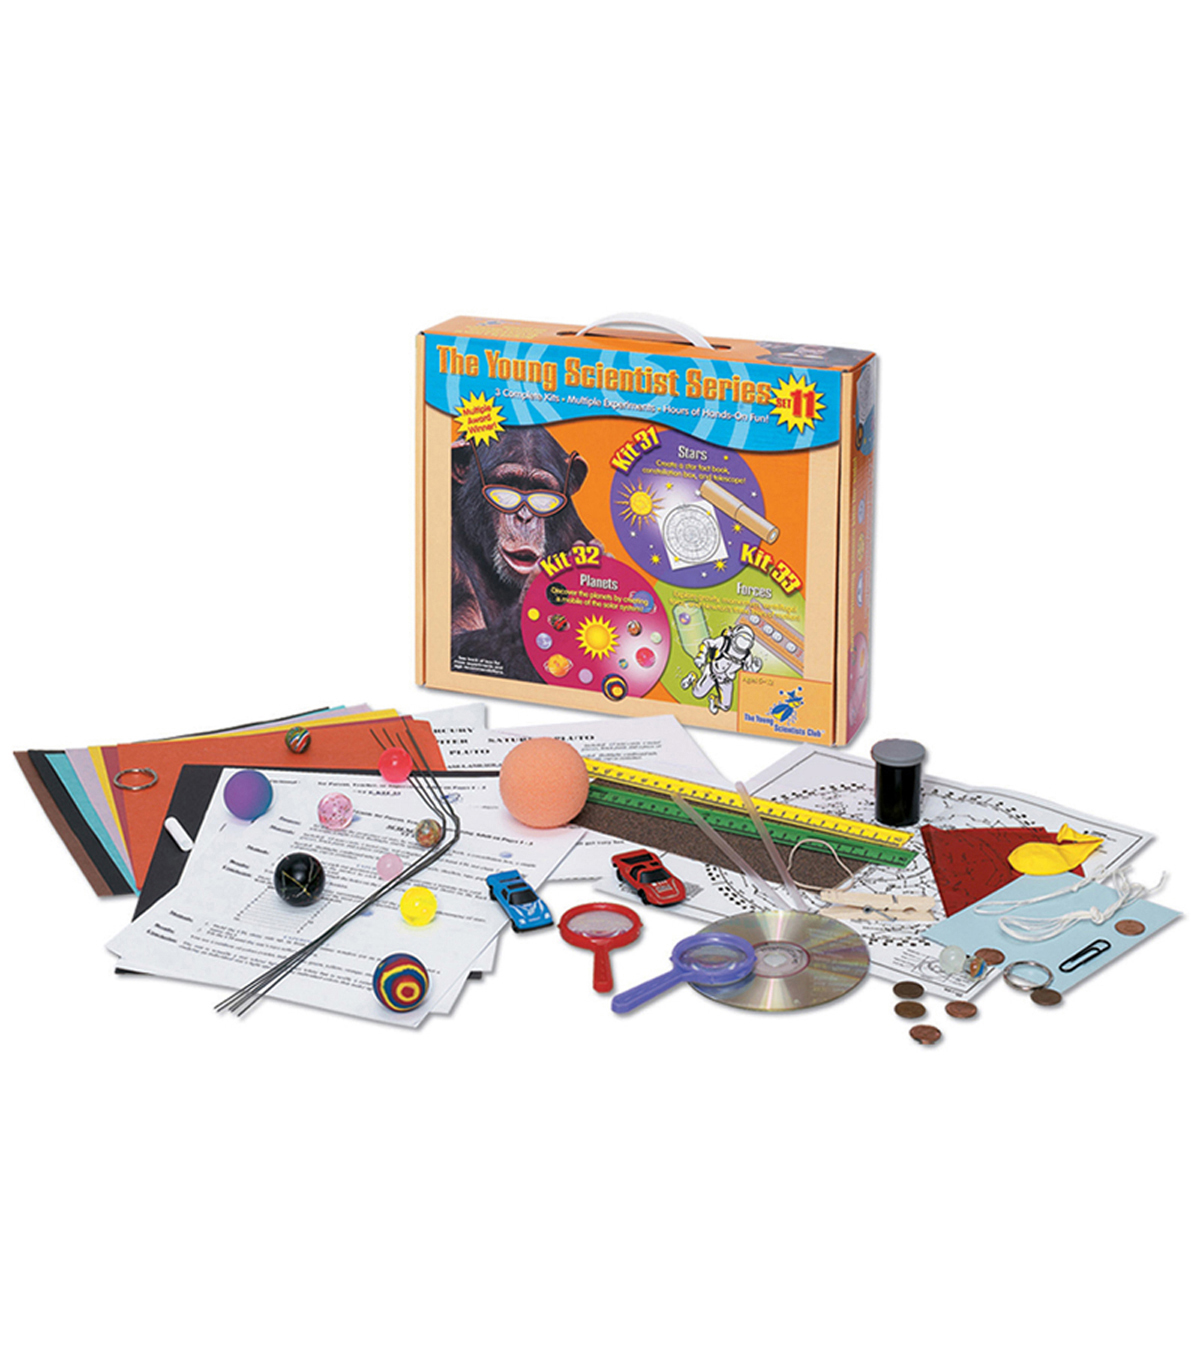 The Young Scientist Kit-Stars, Planets, Forces